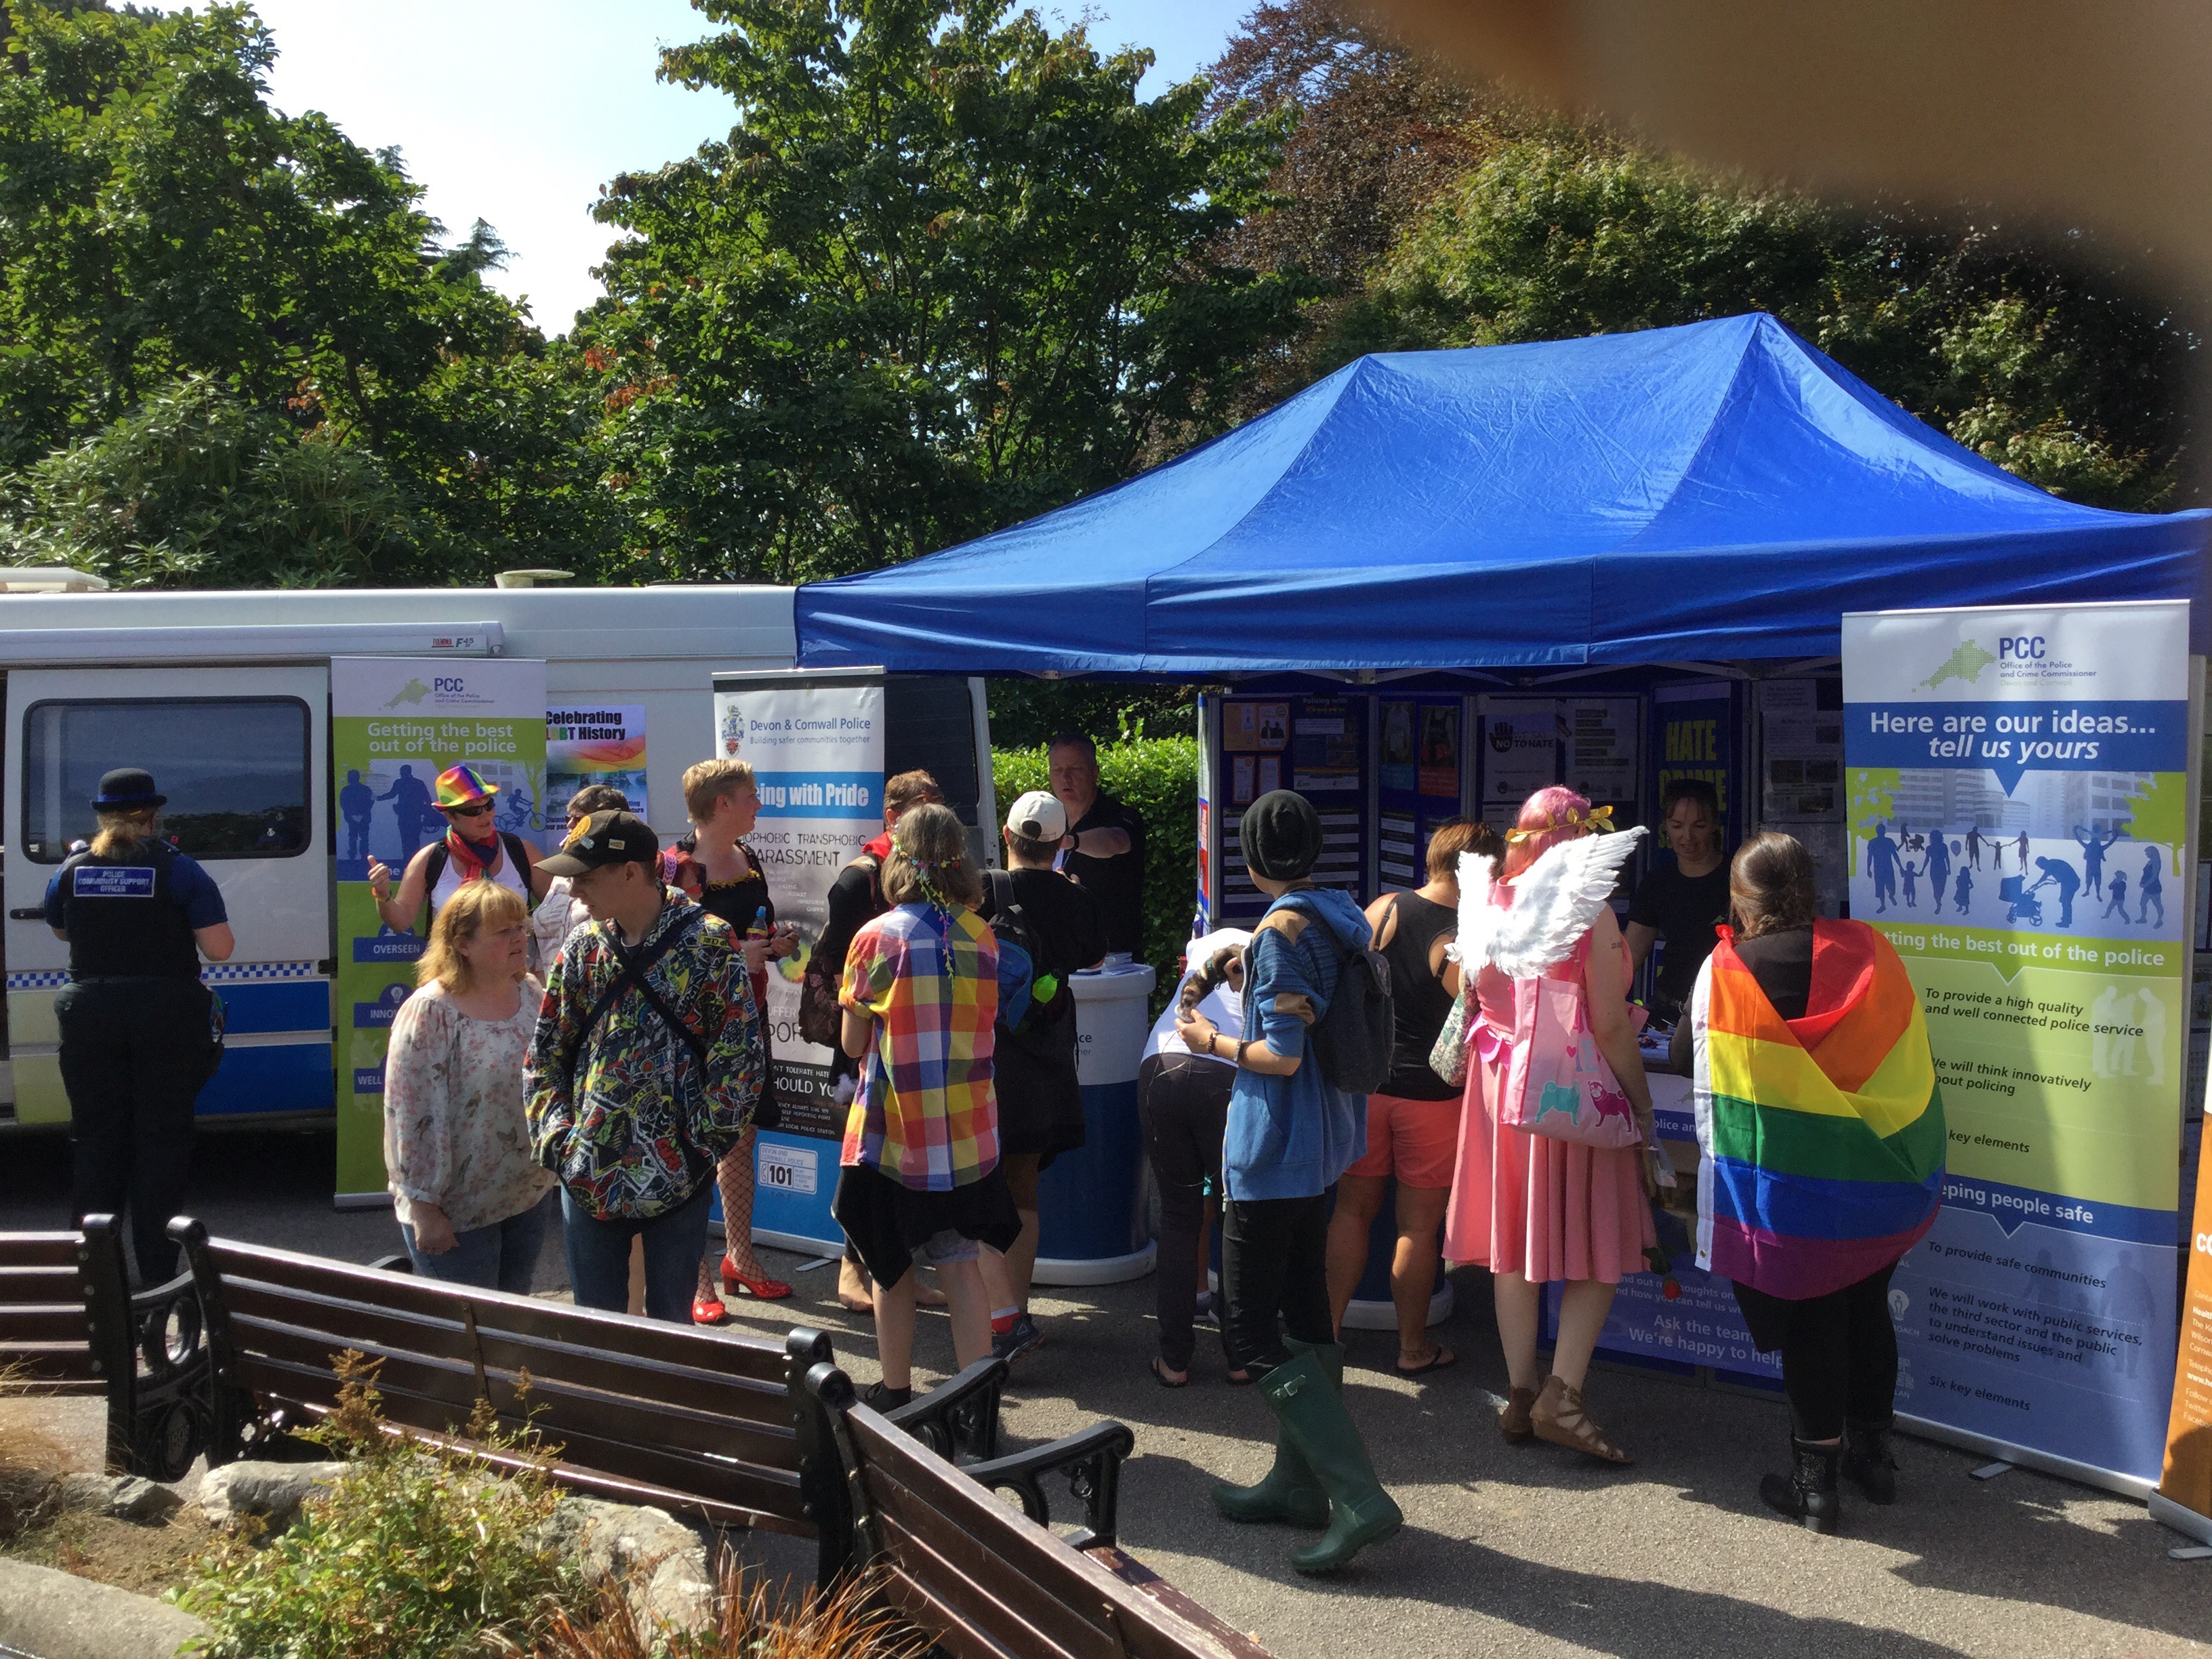 Bideford Diversity and Pride Festival